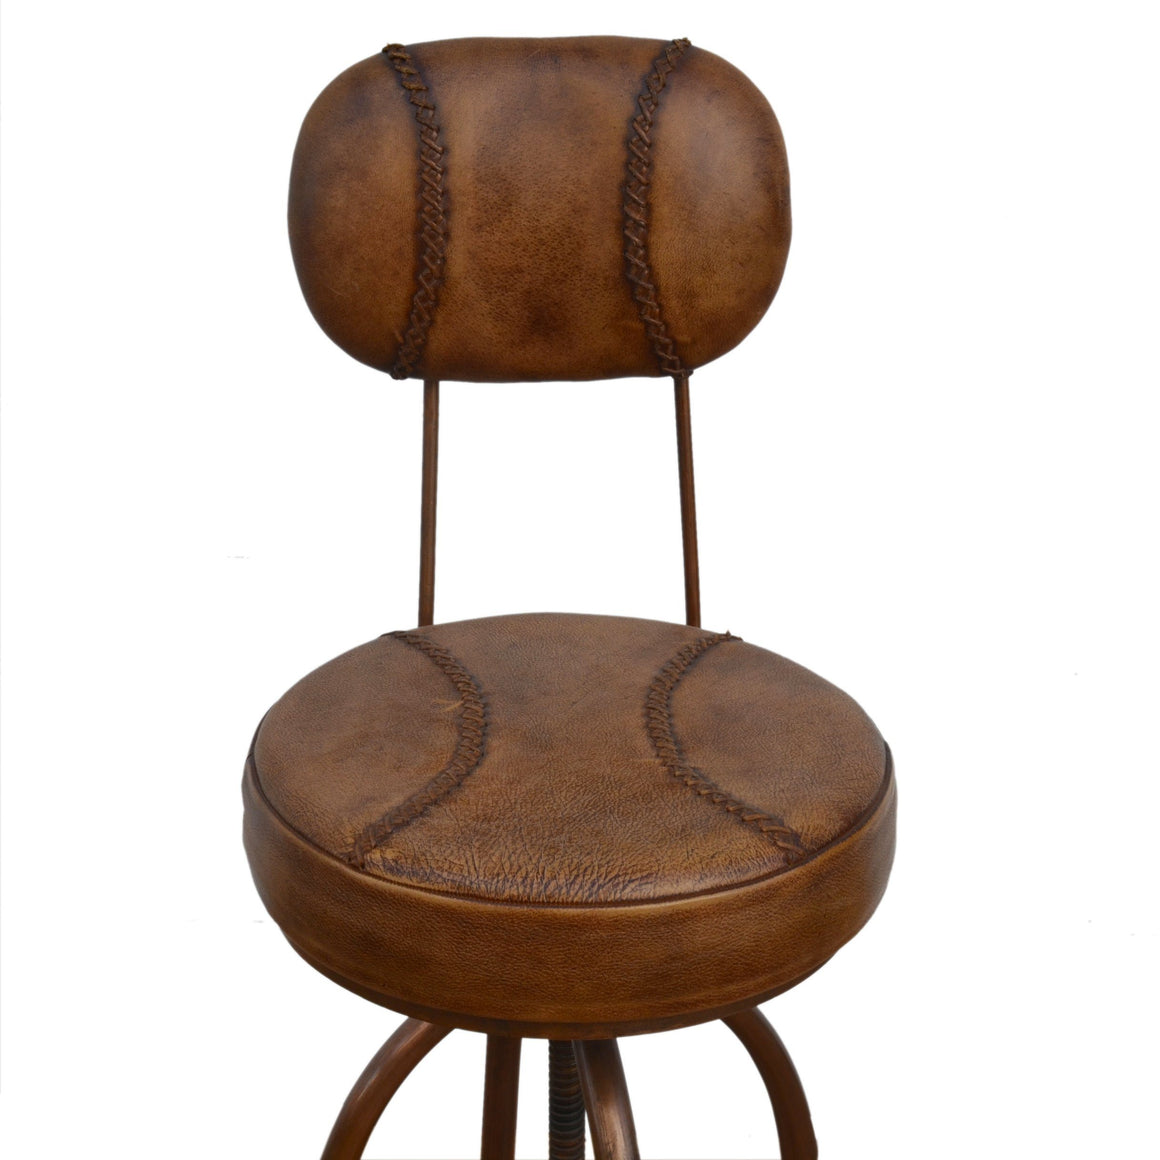 INDUSTRIAL BAR CHAIR WITH LEATHER Philbee Interiors